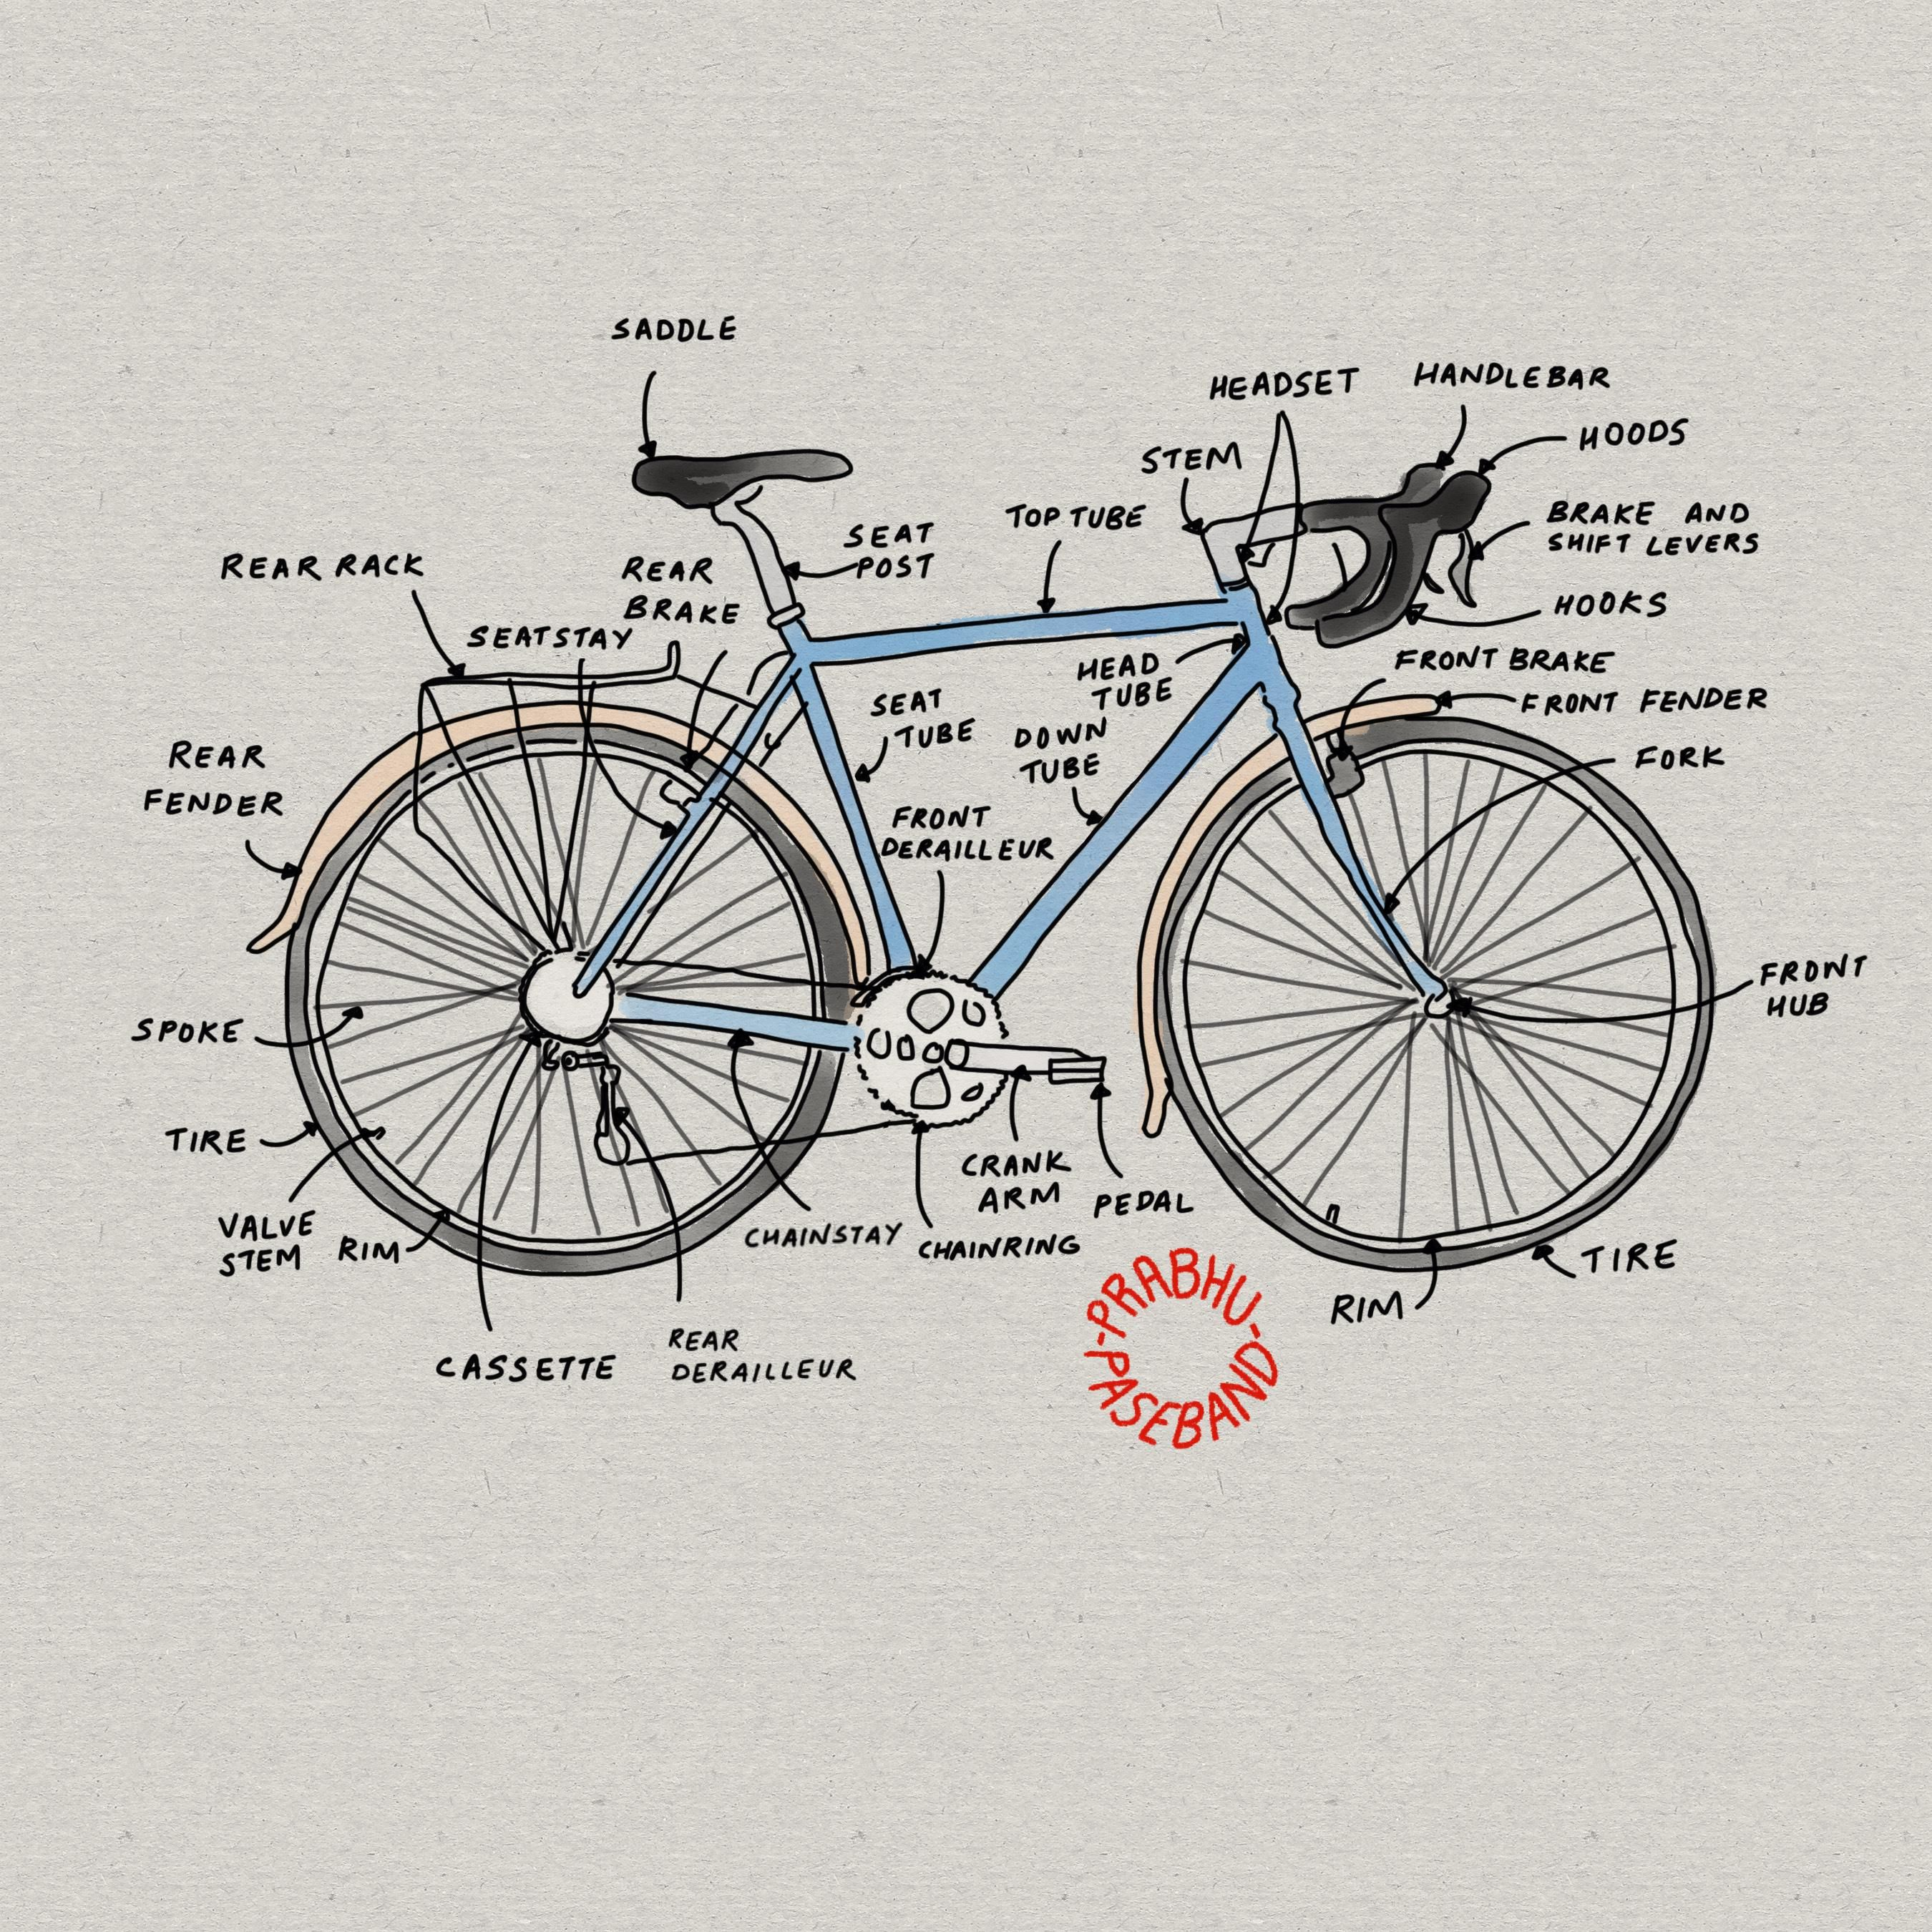 Just Sharing Anatomy Of Mountain Bike Parts U0026 Components Manual Guide